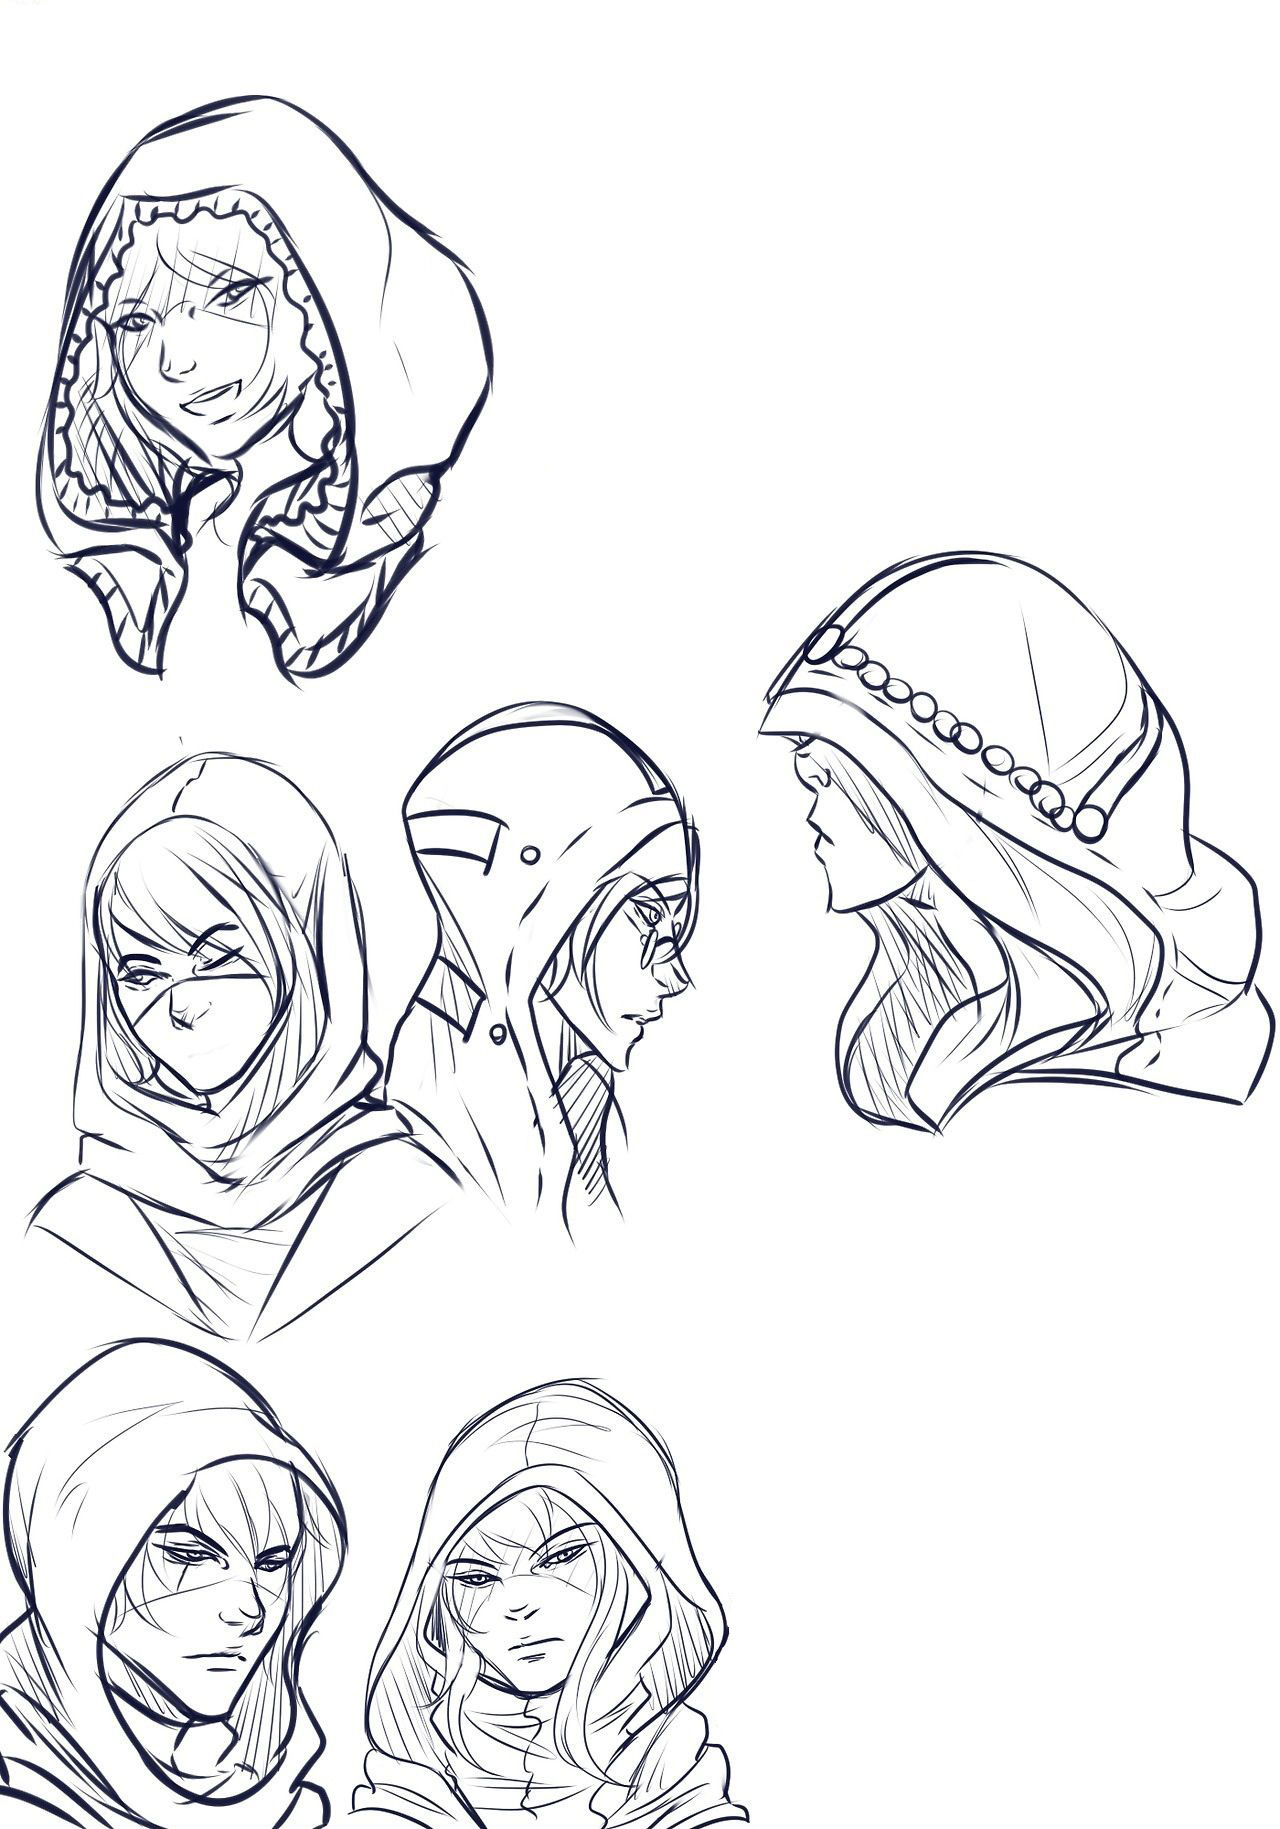 Hood drawing reference